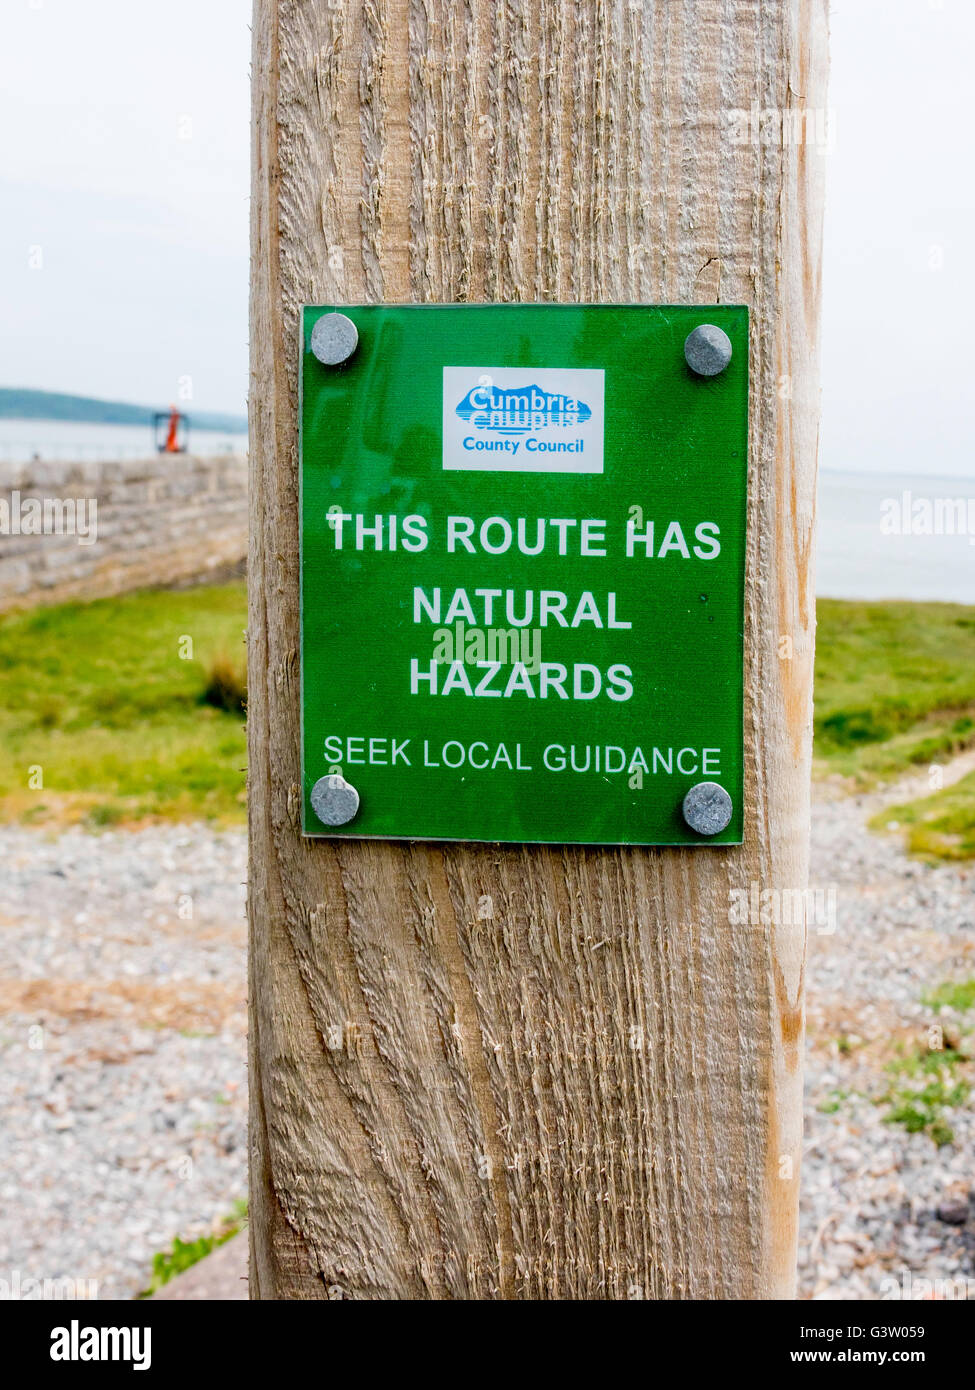 Cumbria County Council warning sign notice This Route Has Natural Hazards Seek Local Guidance foreshore footpath - Stock Image